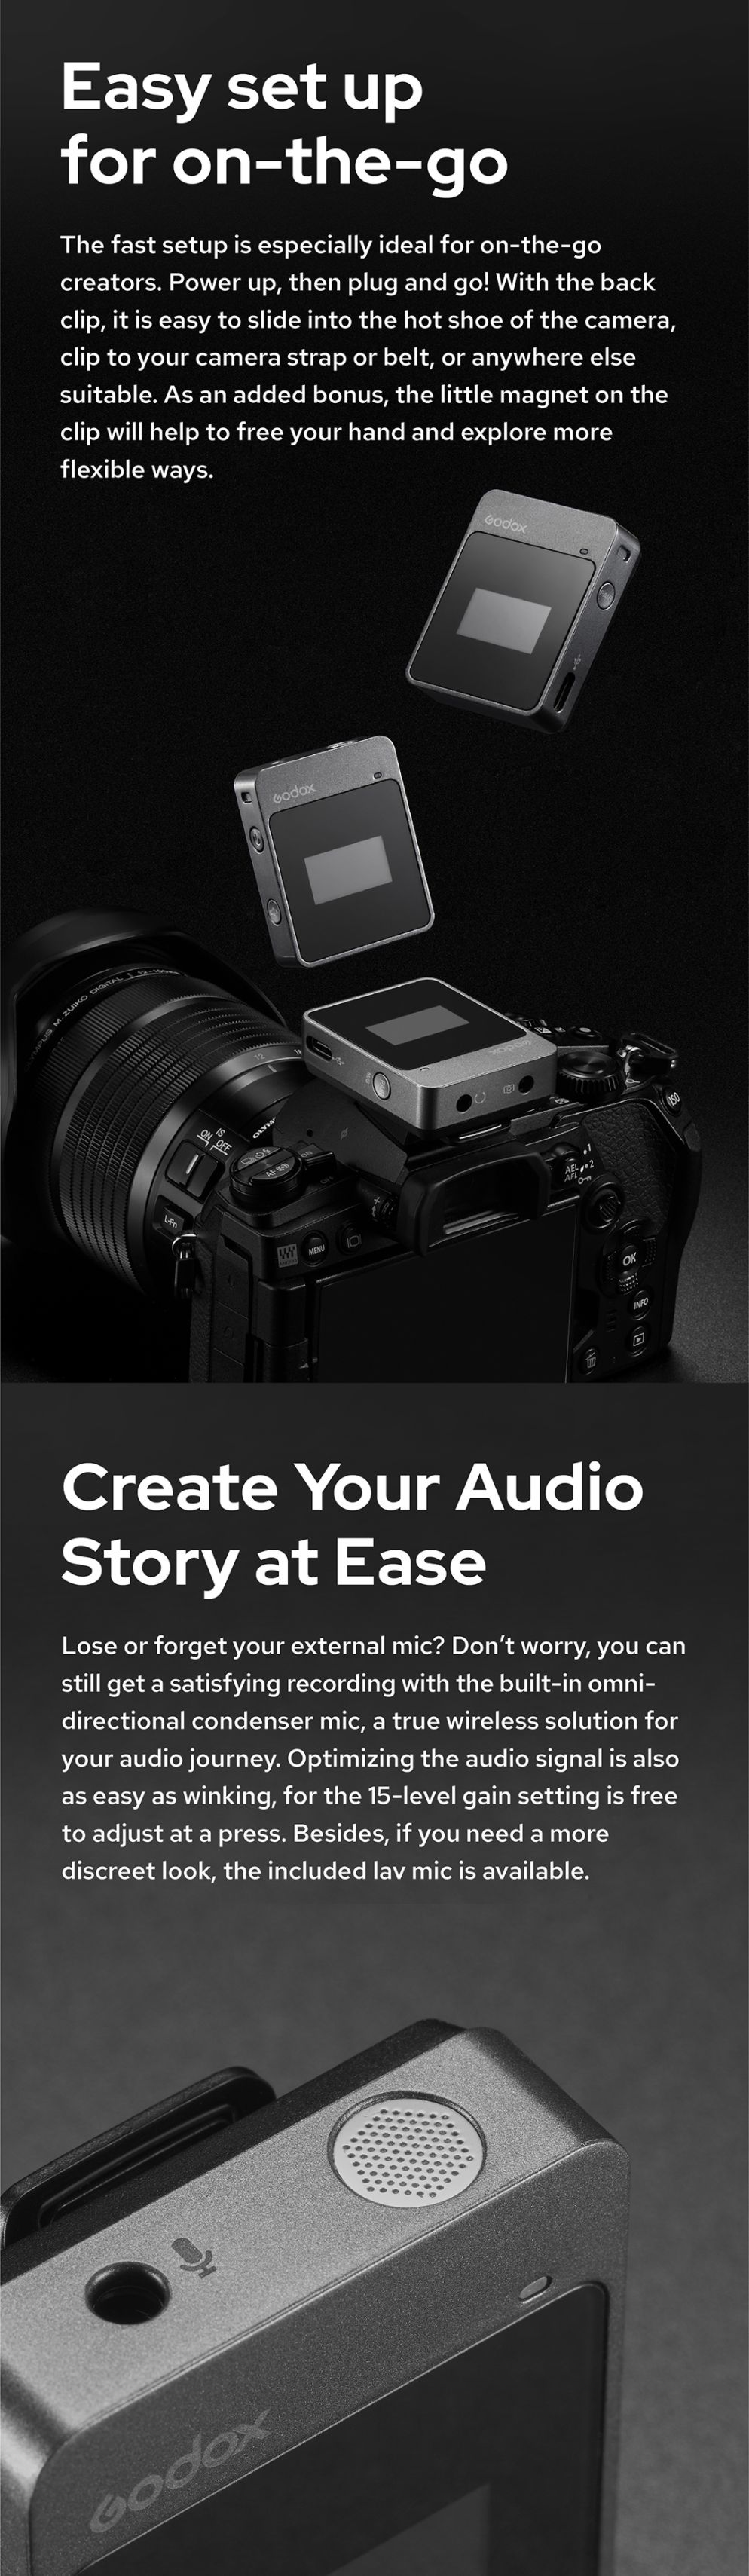 Easy set up for on-the-go, Create Your Audio Story at Ease